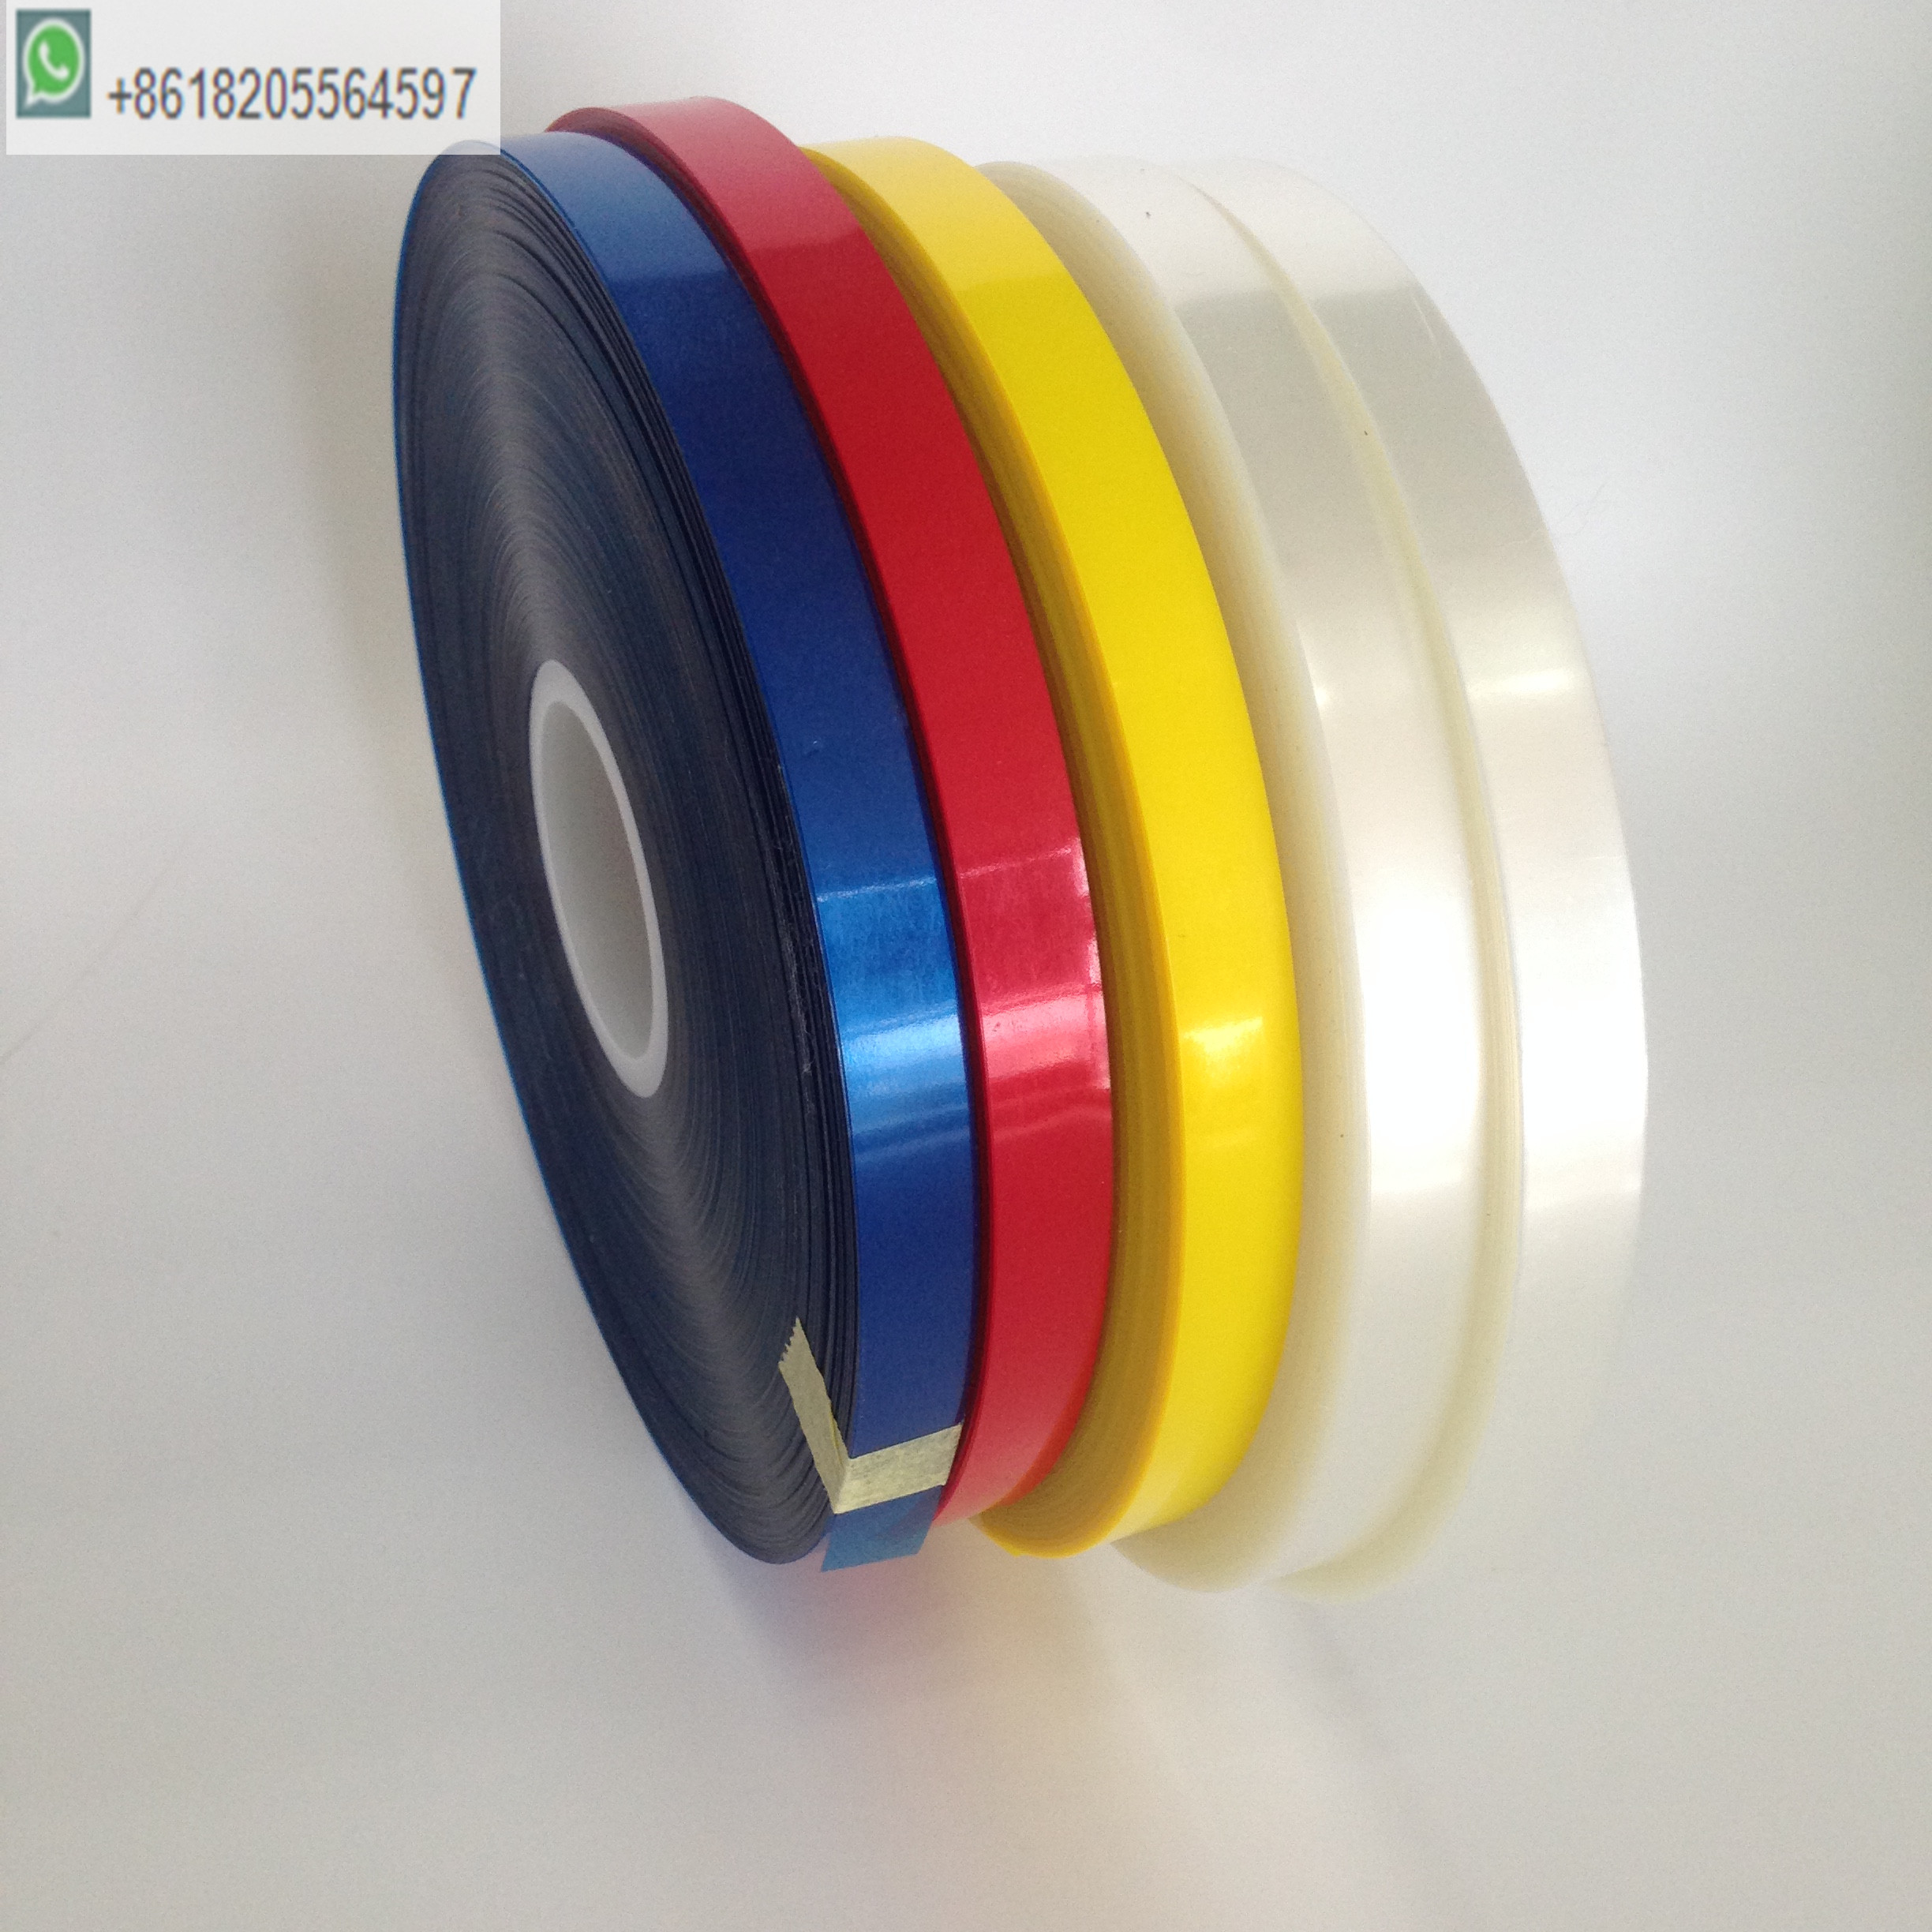 12mm wide OPP transparent film for tape strapping machine use